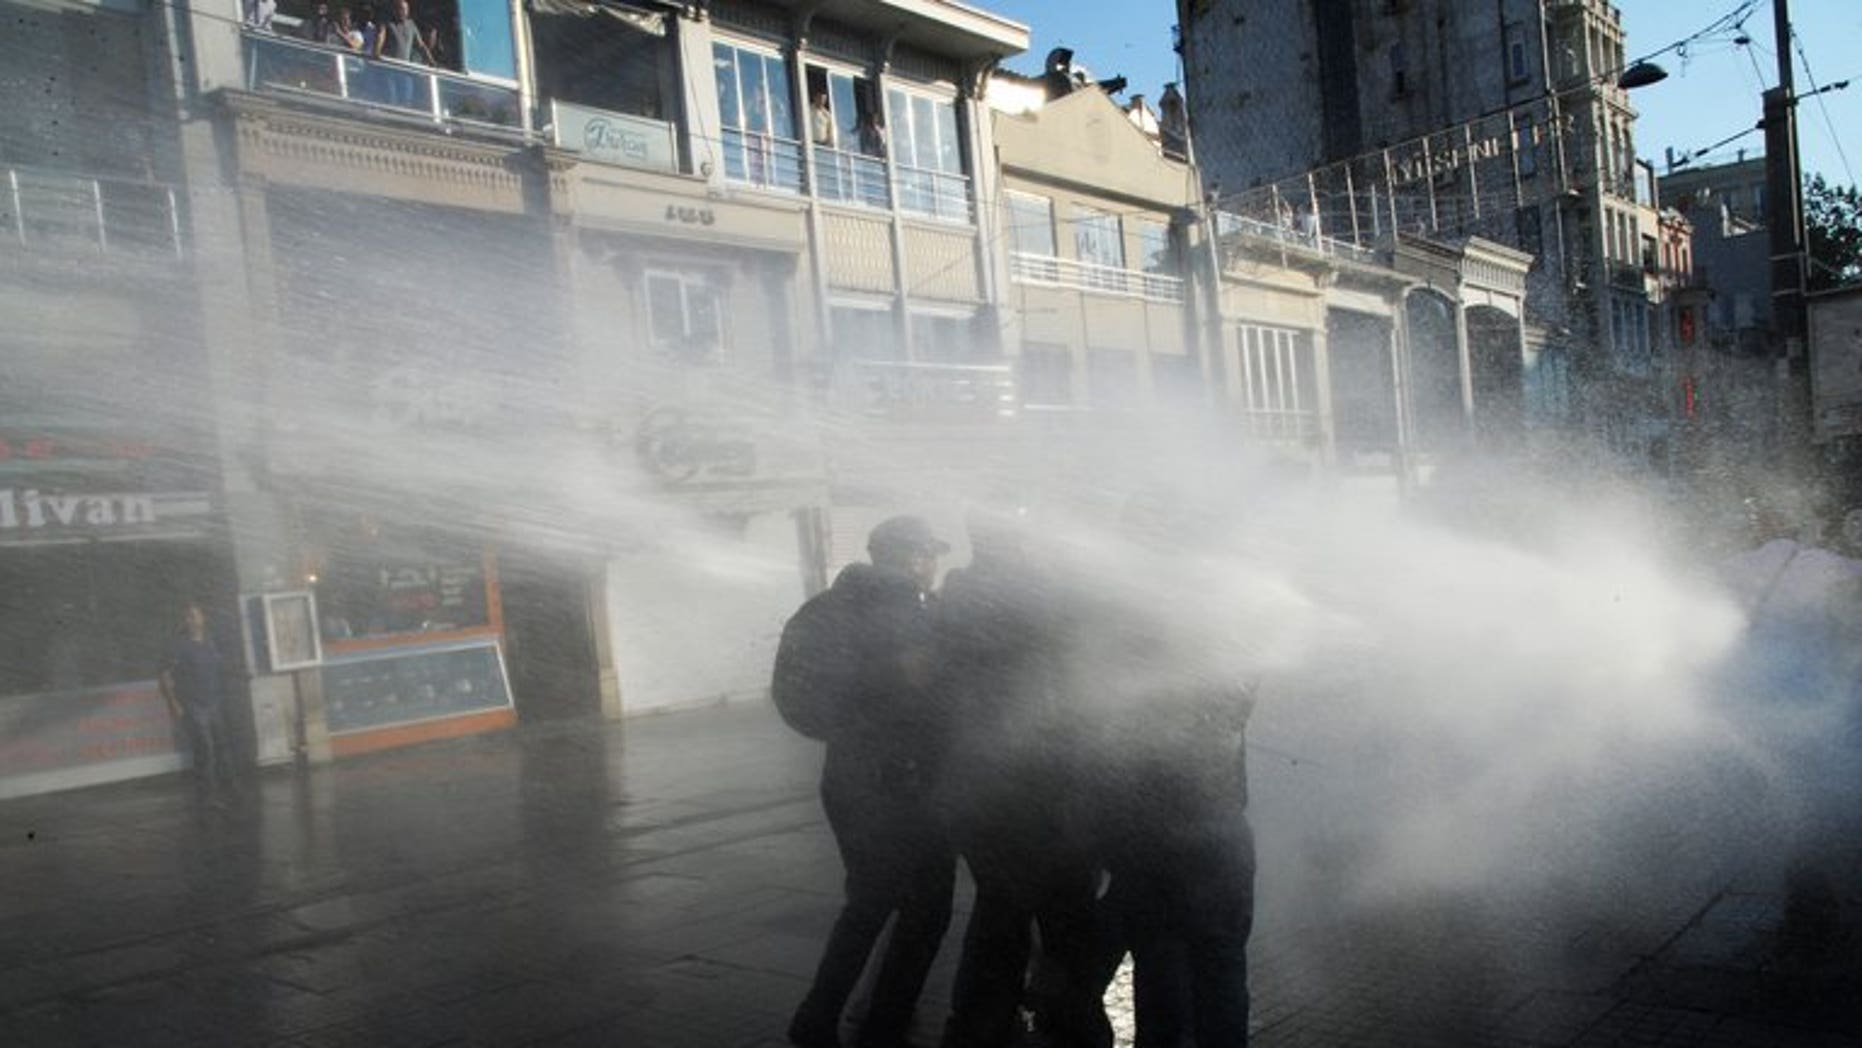 Turkish protesters take cover from a water cannon during clashes with police on Istiklal Avenue in Istanbul, on July 8, 2013. A 19-year-old university student who was hurt during anti-government protests that rocked Turkey last month has died from his injuries, bringing the death toll in the unrest to five, according to local media reports.